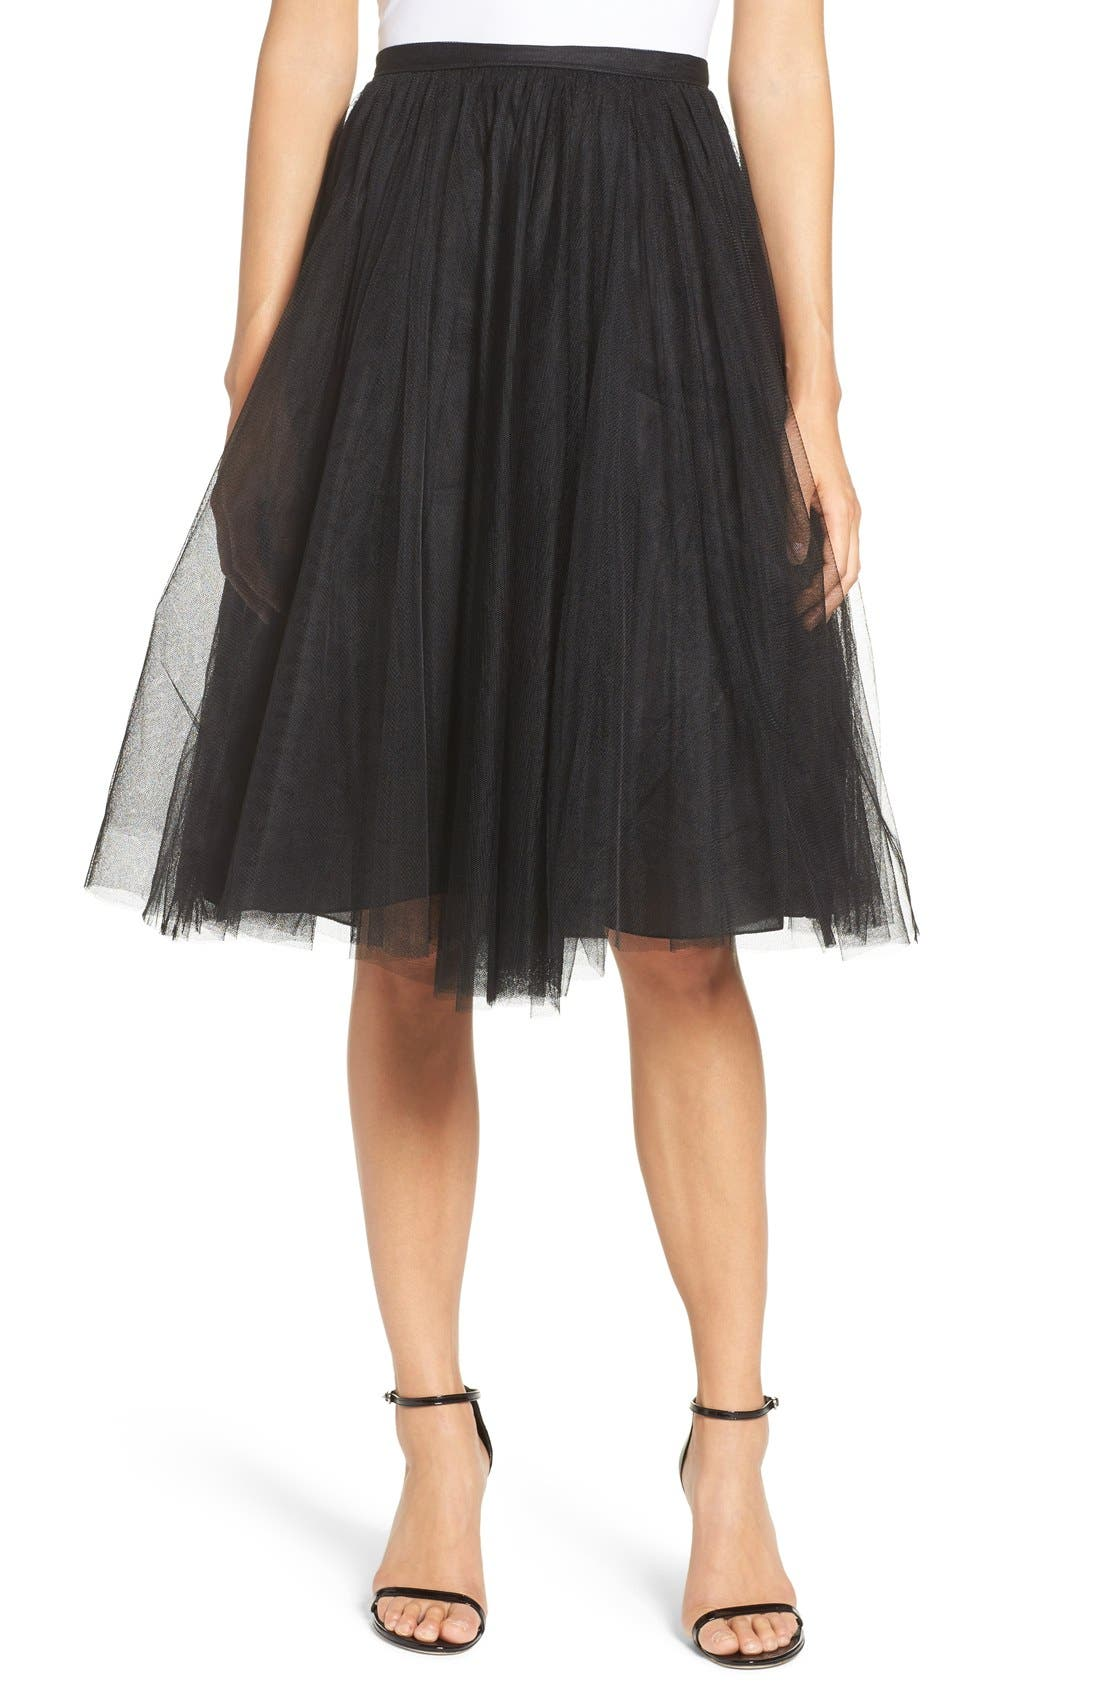 Alternate Image 1 Selected - Jenny Yoo 'Lucy' Tulle Skirt